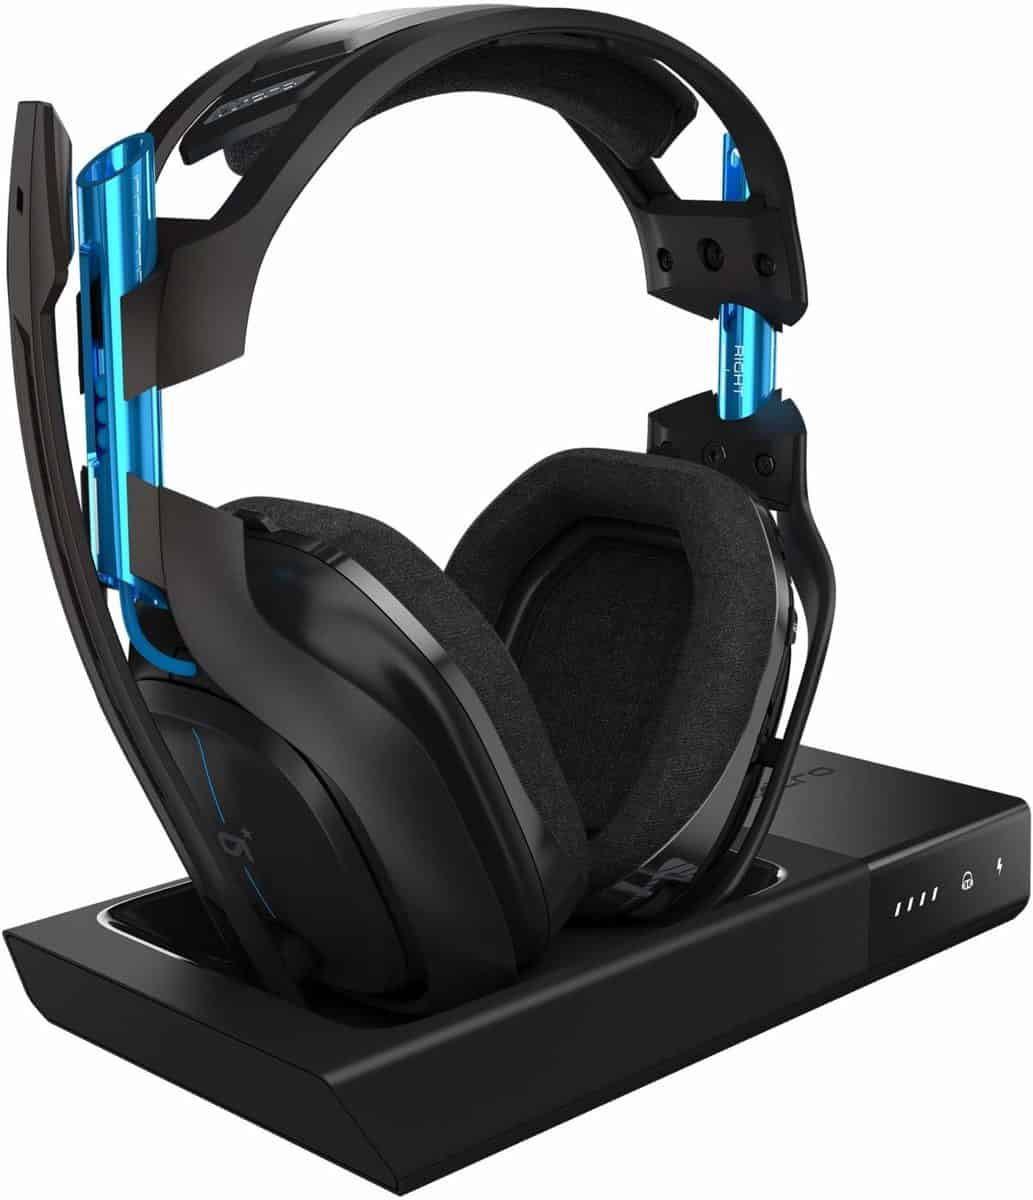 Best Wireless Gaming Headset 2020.The Best Gaming Headsets In 2019 Wepc Com